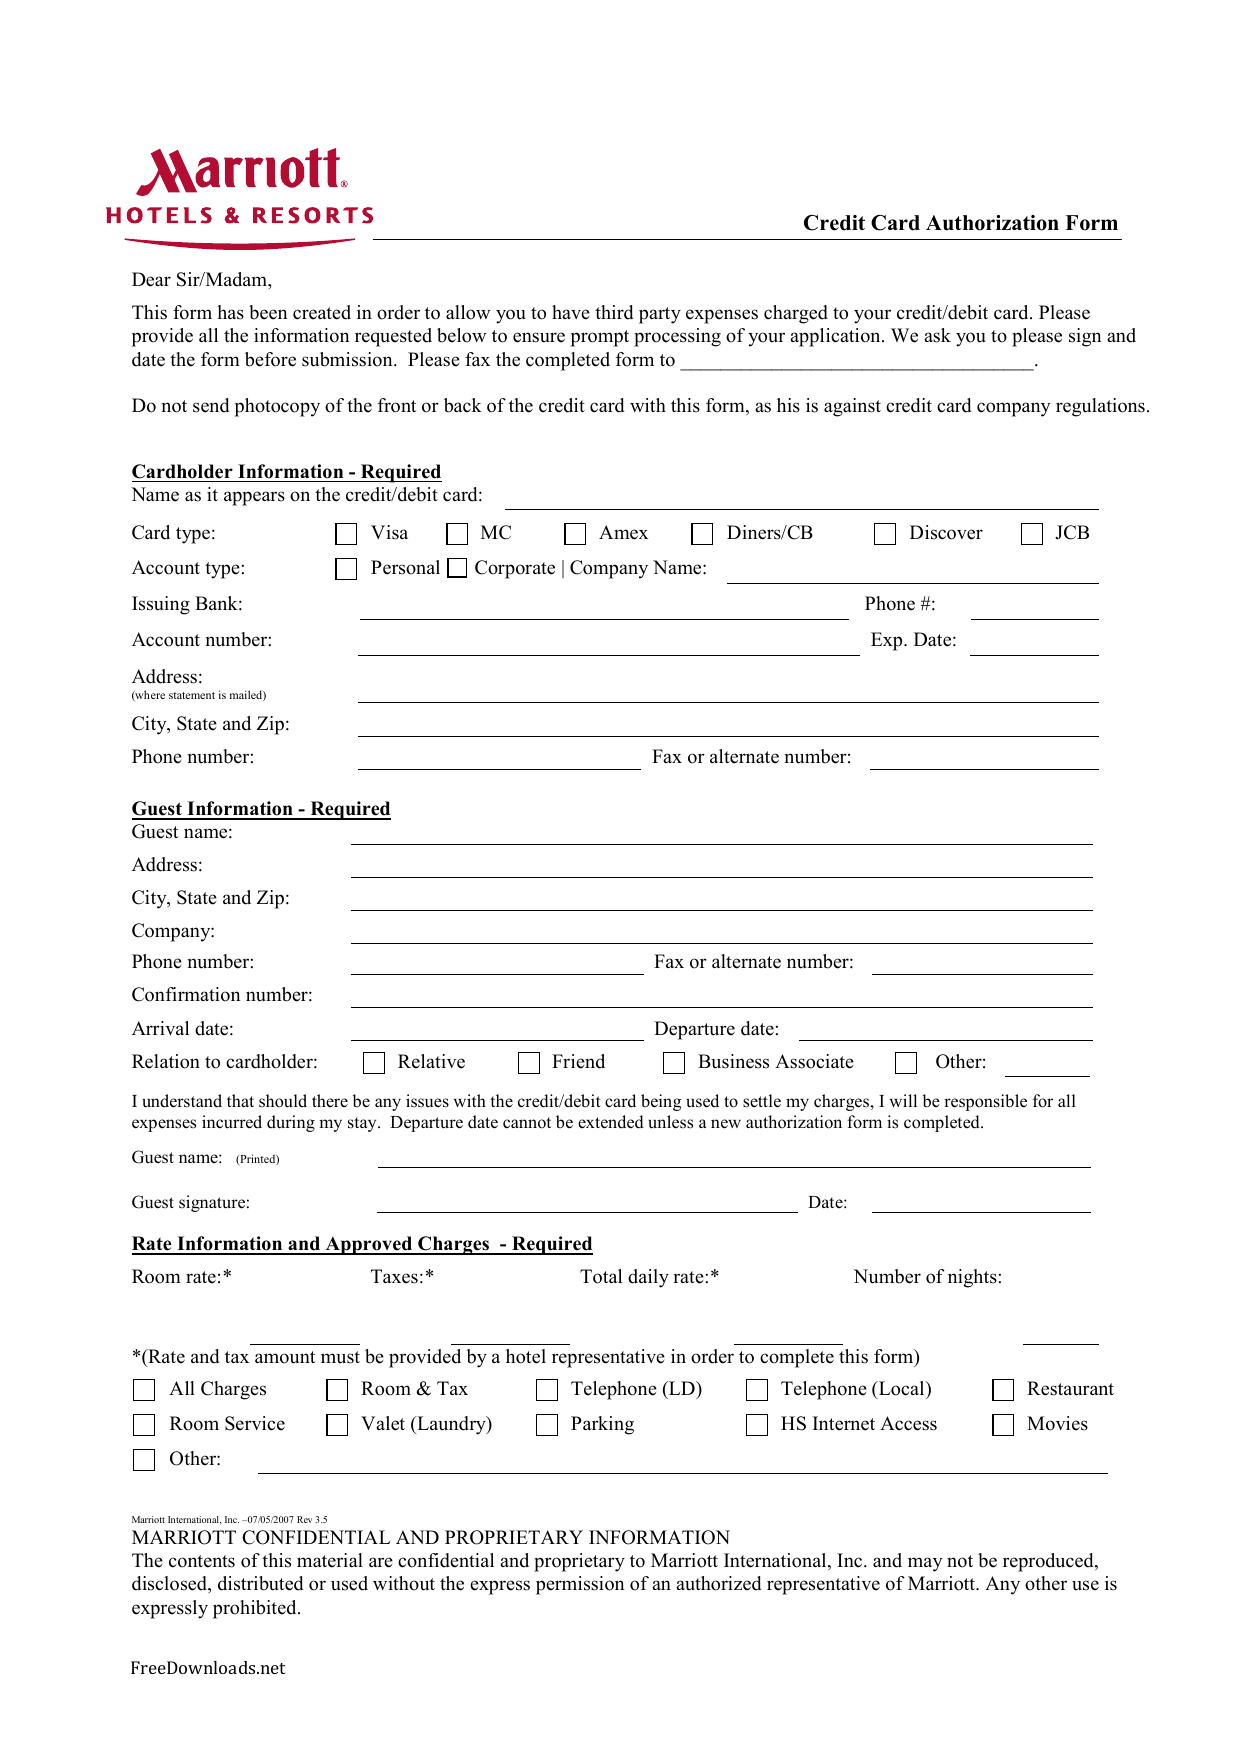 marriott credit card authorization form template